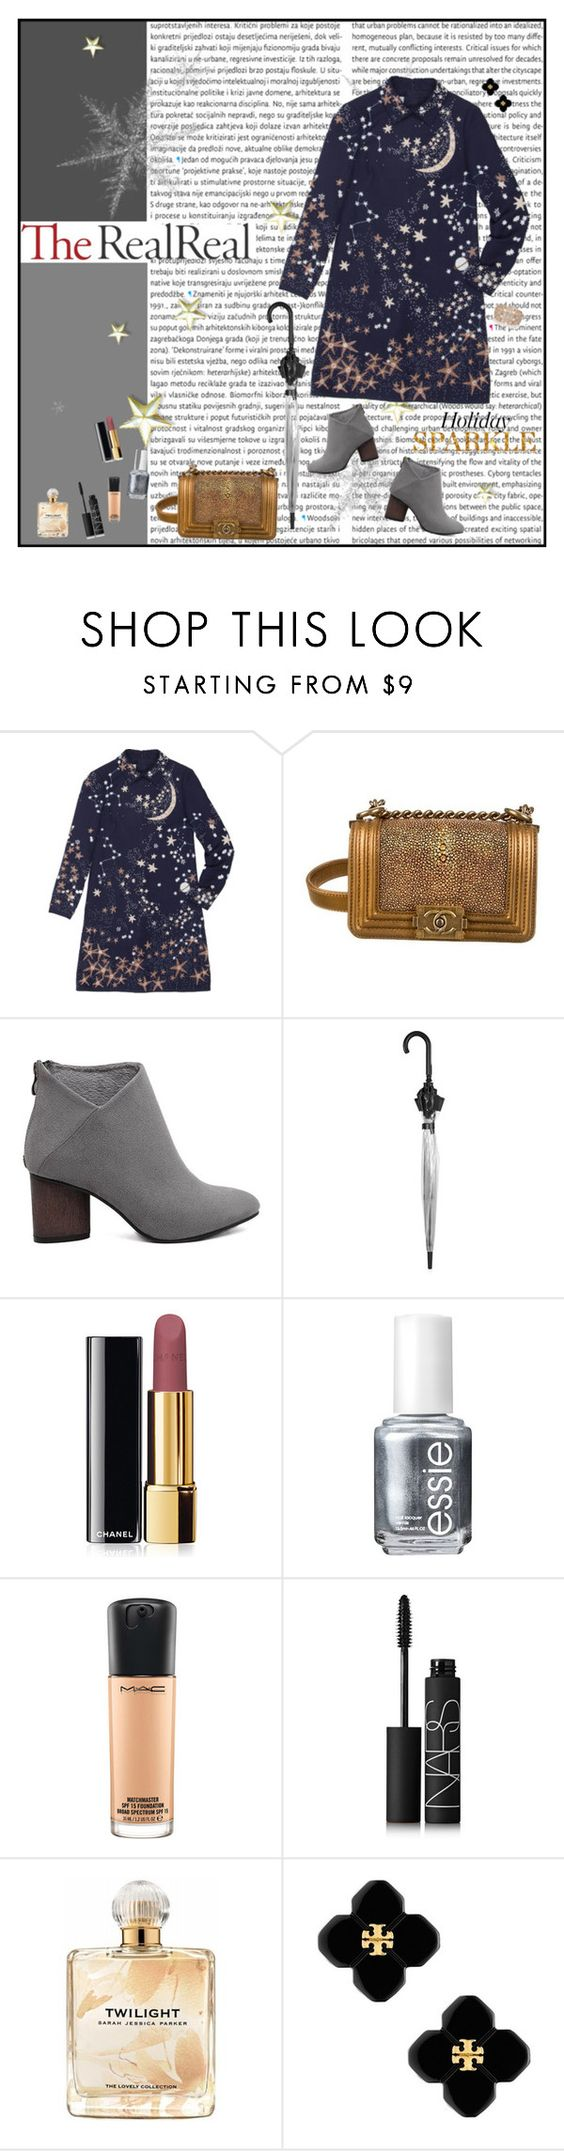 """""""#Holiday Sparkle With The RealReal"""" by hazell-jess ❤ liked on Polyvore featuring Valentino, Chanel, Topshop, Essie, MAC Cosmetics, NARS Cosmetics, Sarah Jessica Parker, Tory Burch and Oasis"""